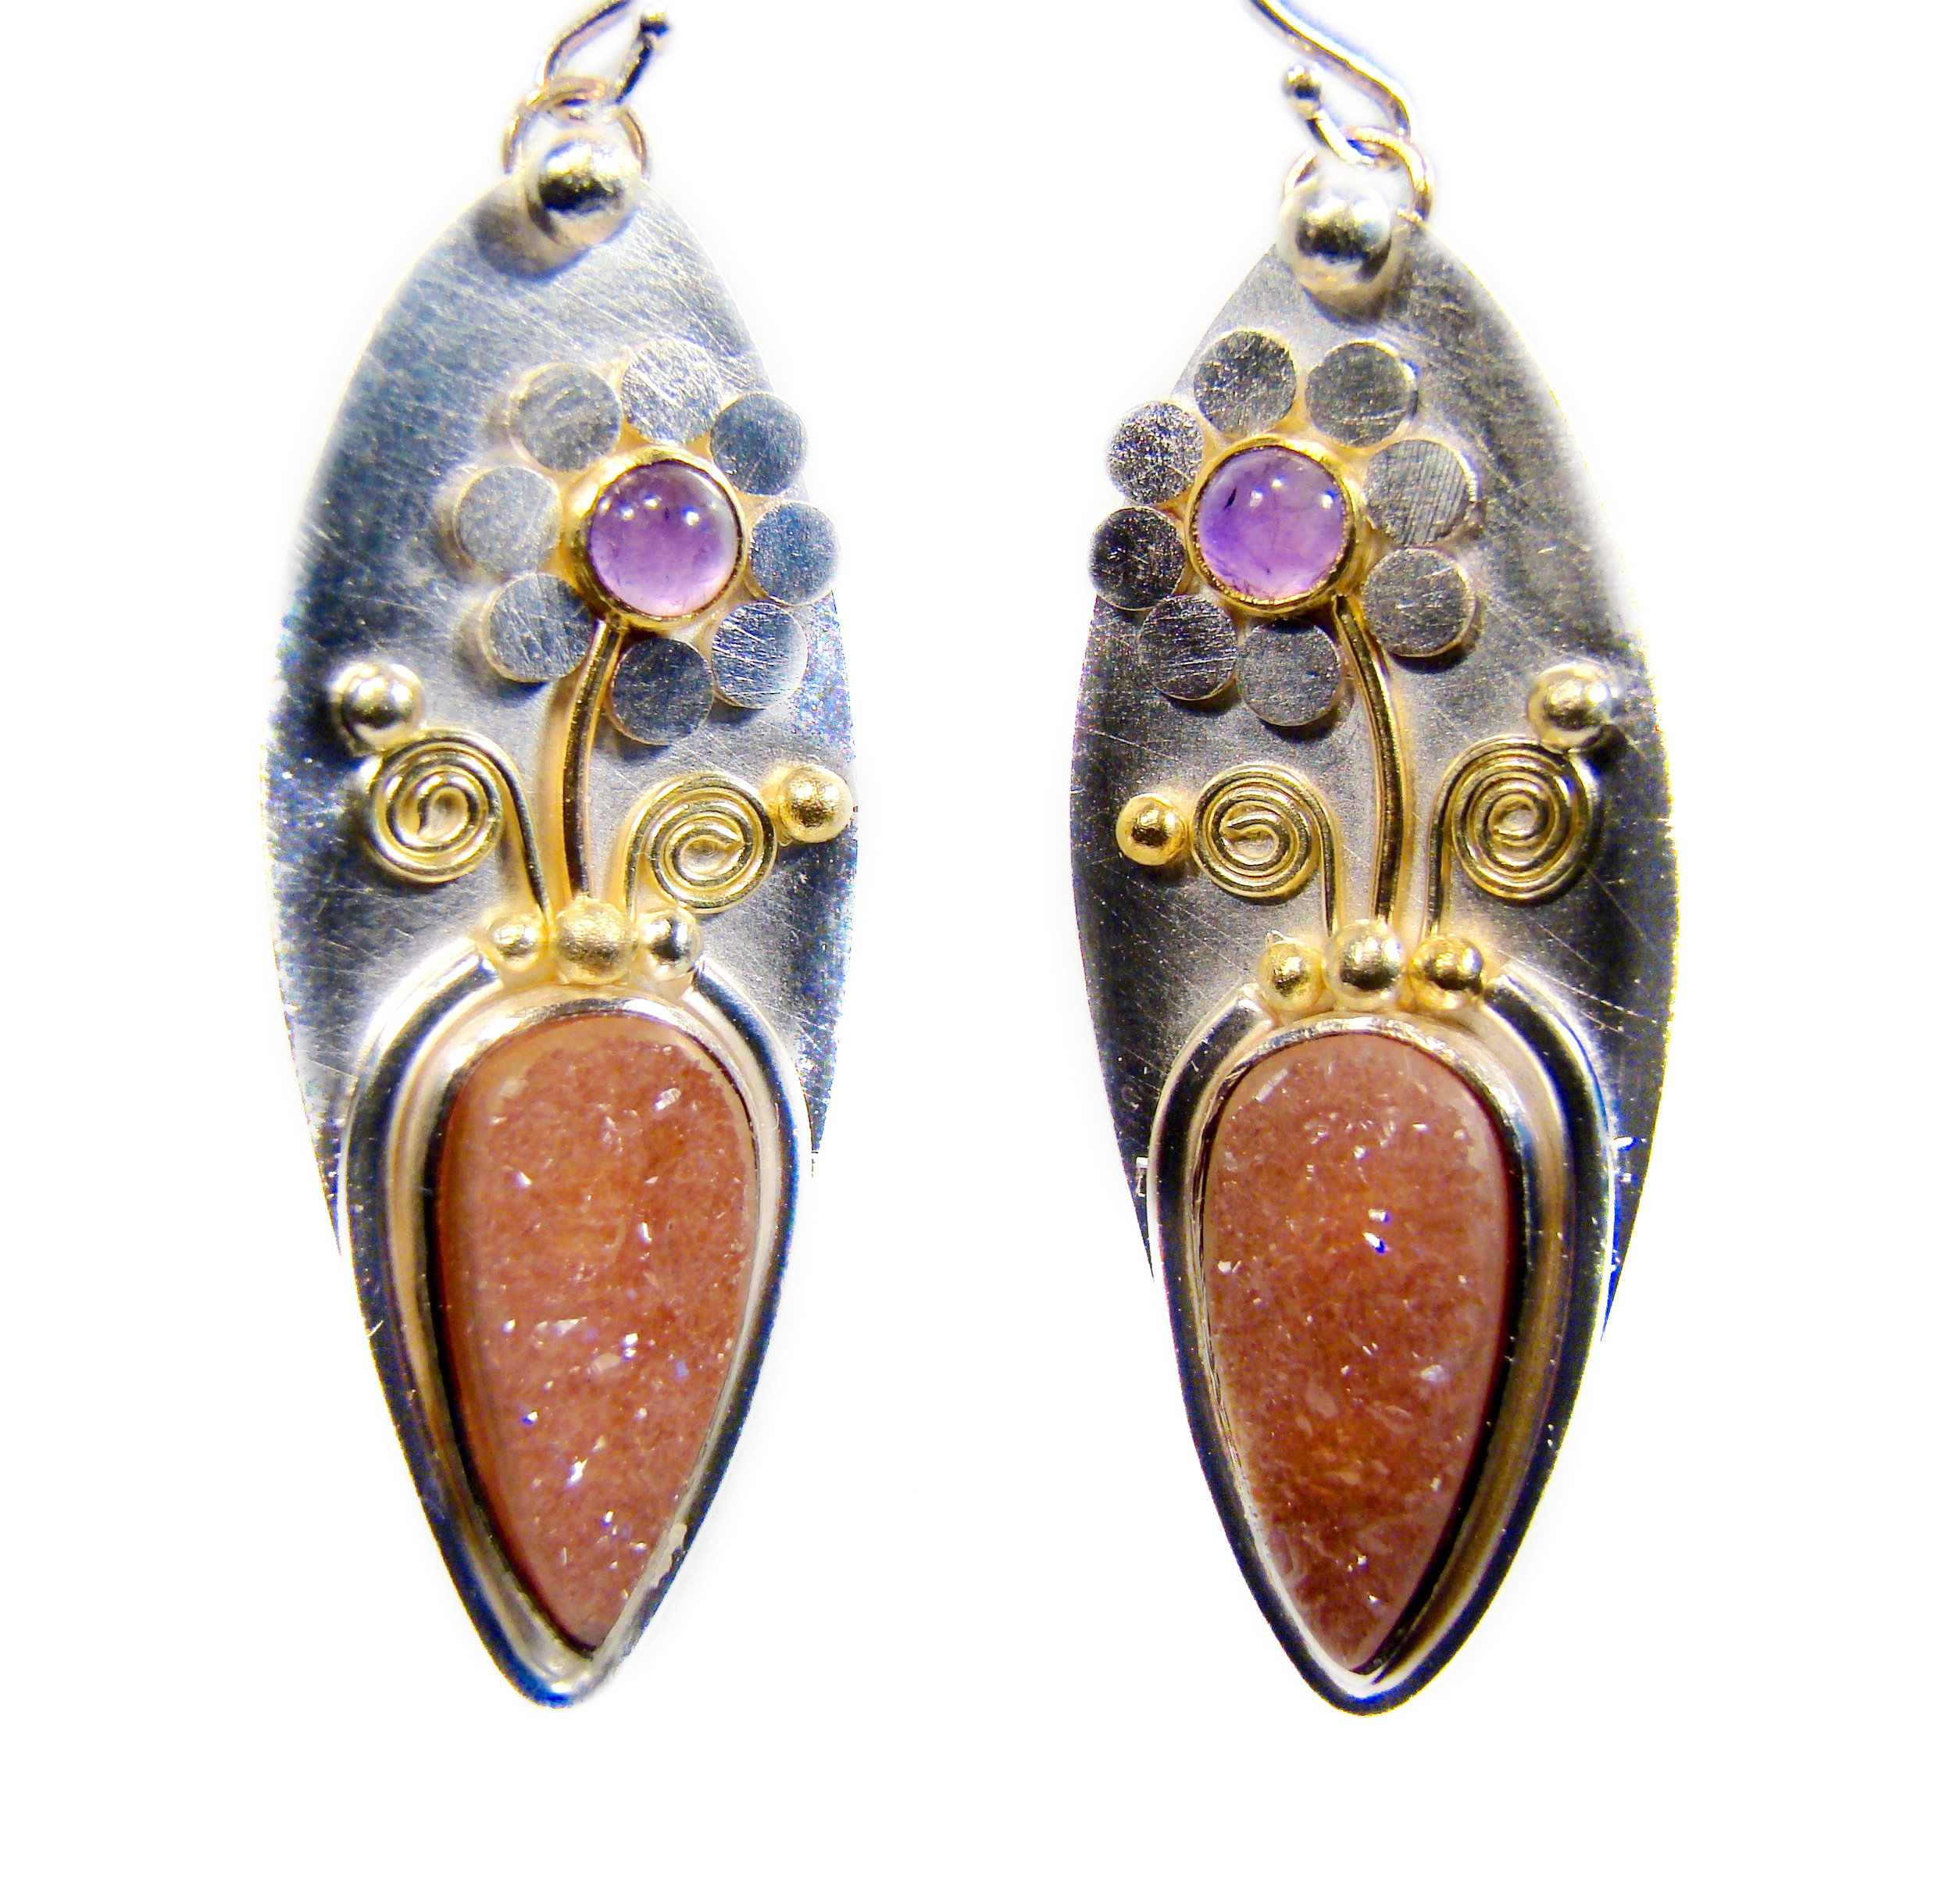 Earrings39.jpg